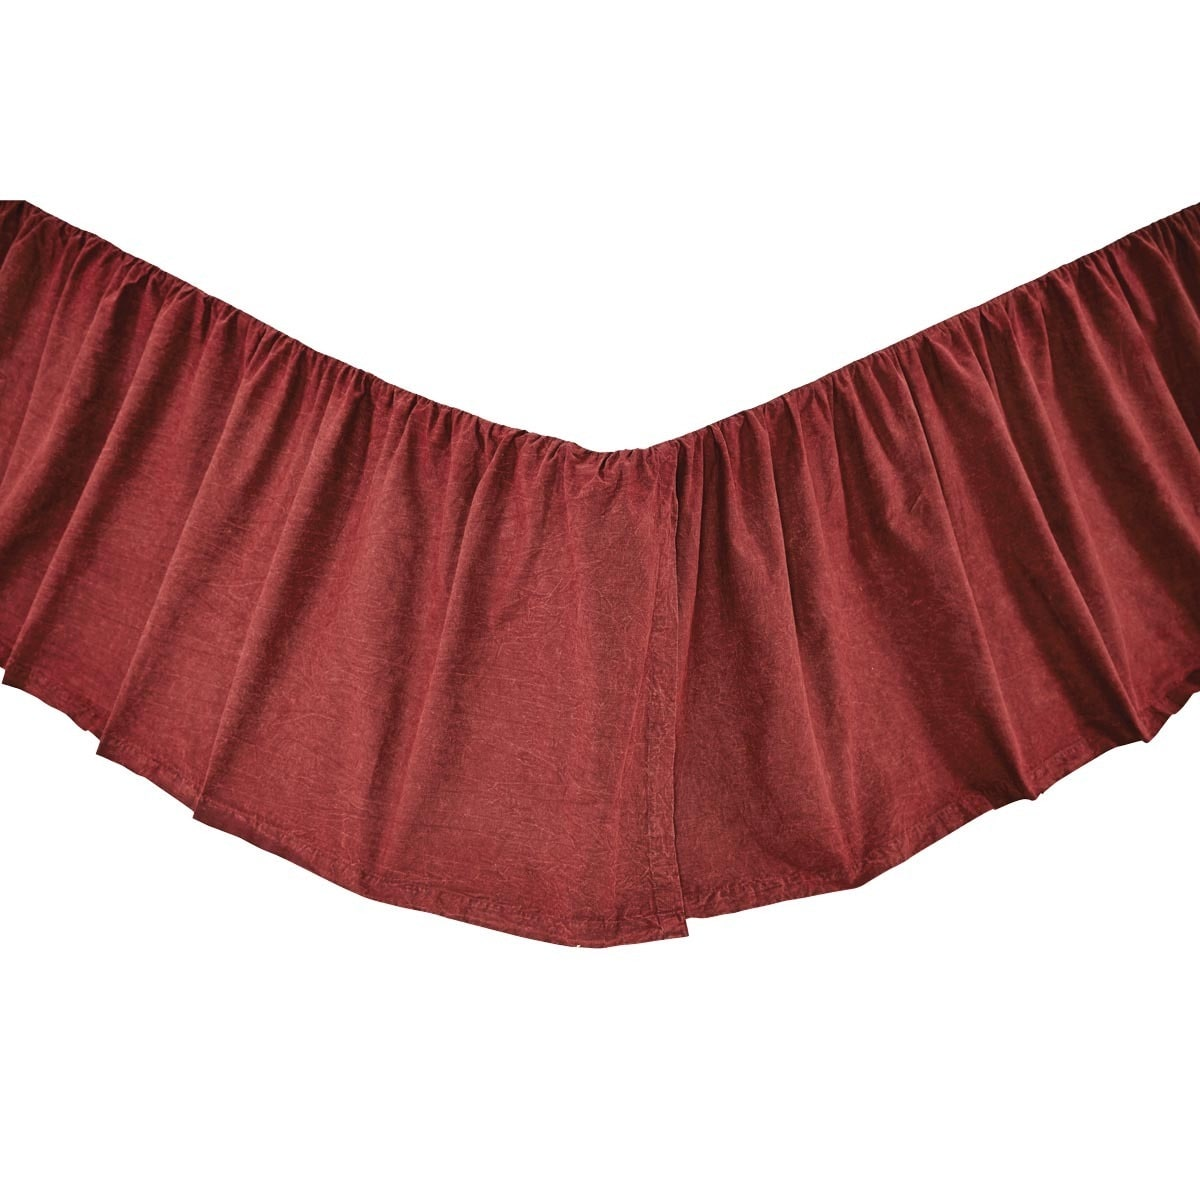 VHC Brands Cheyenne American Red Bed Skirt (Queen) (Cotto...